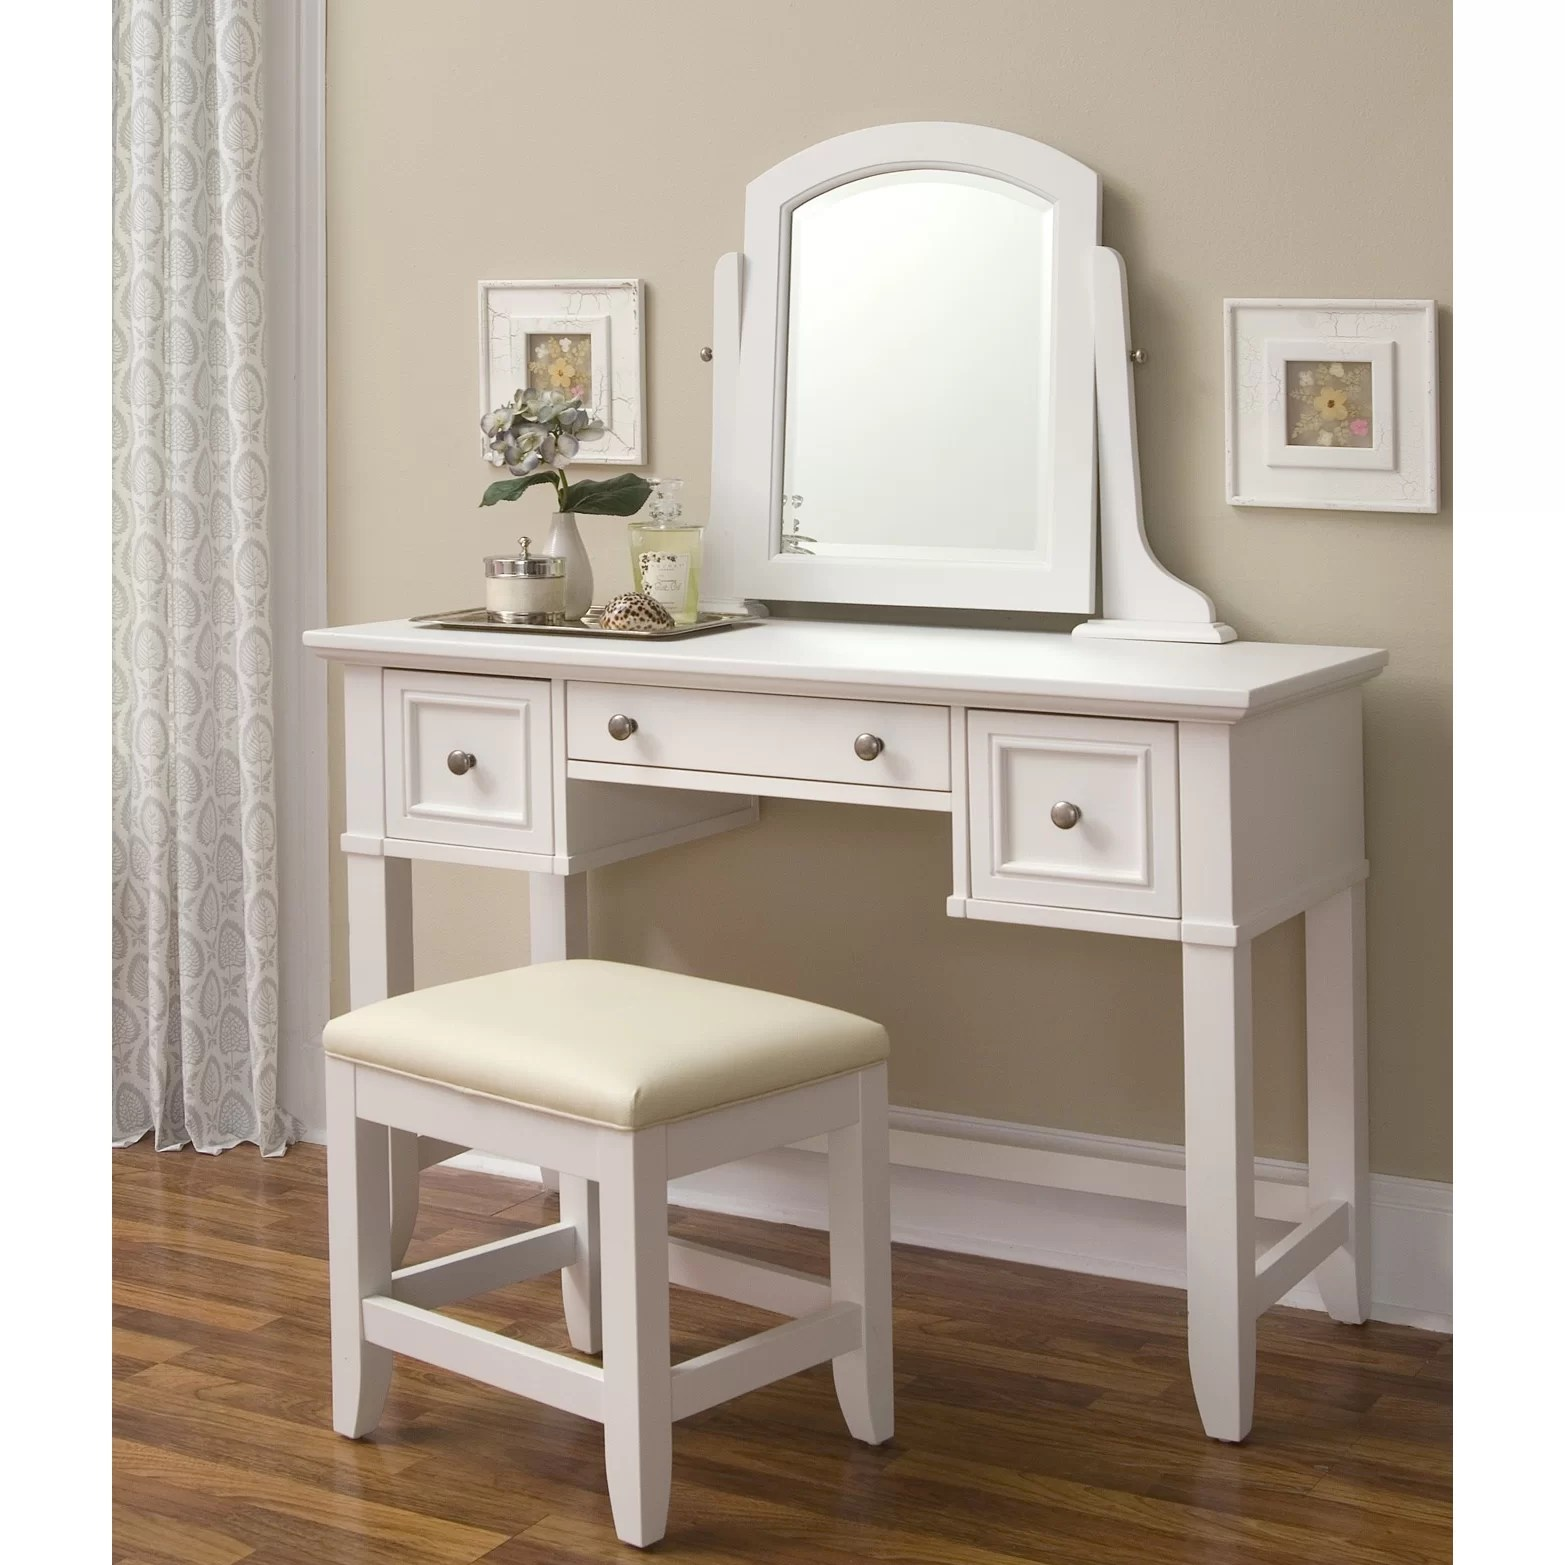 Vanity And Stool Sets Home Styles Naples Vanity And Stool Set And Reviews Wayfair